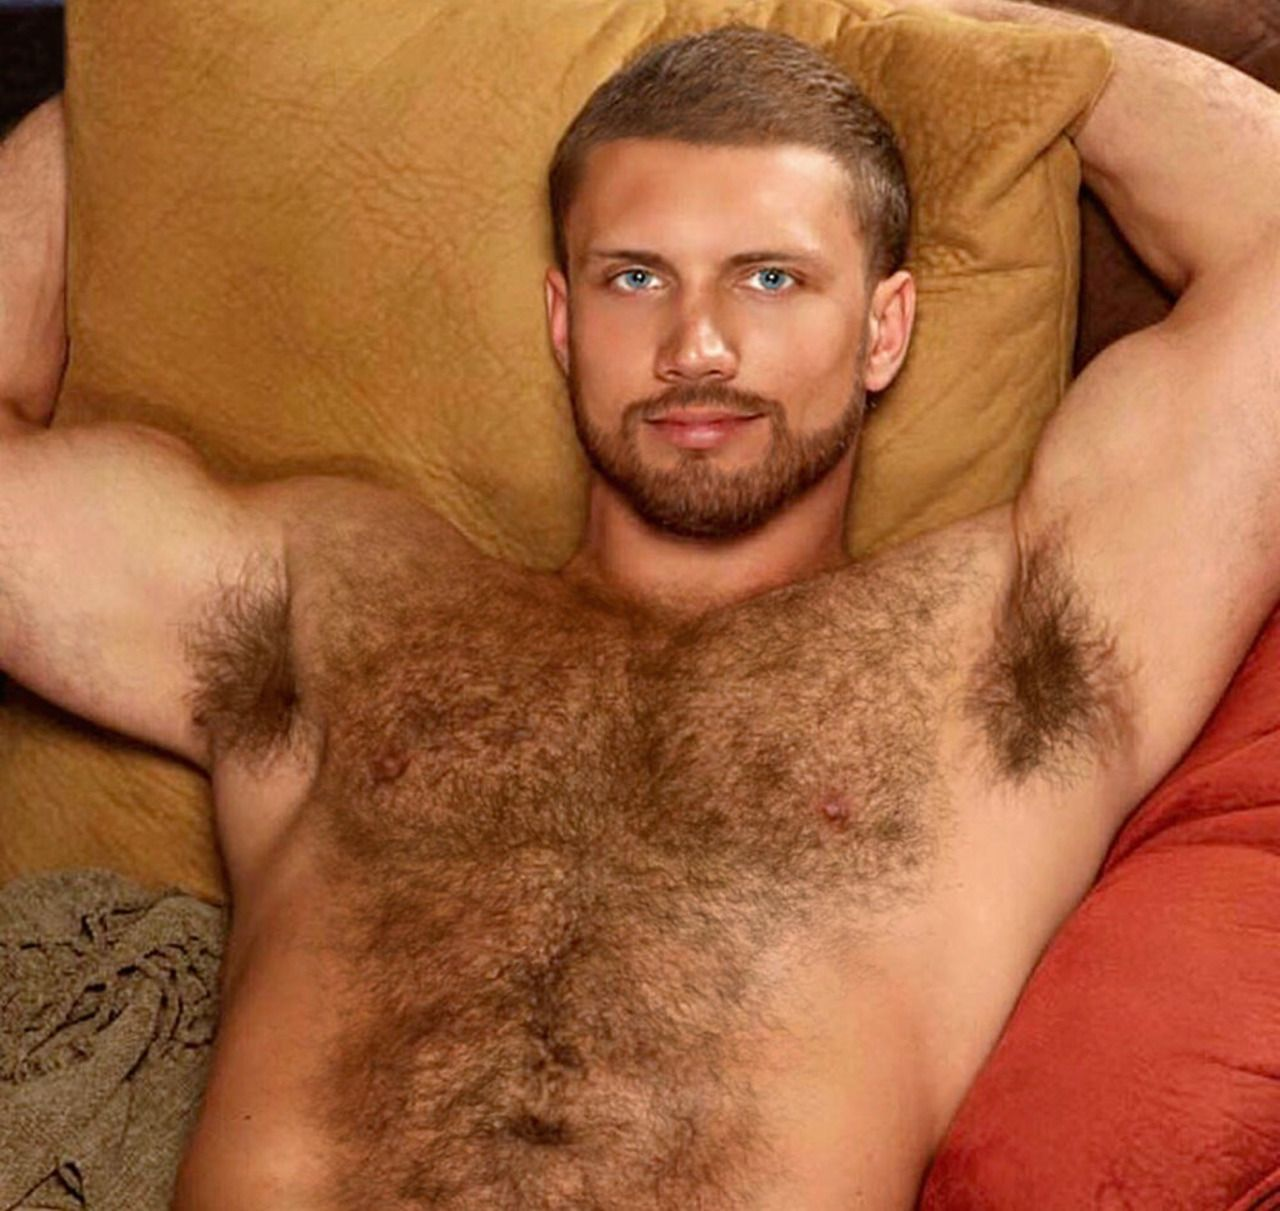 Hairy gay dudes